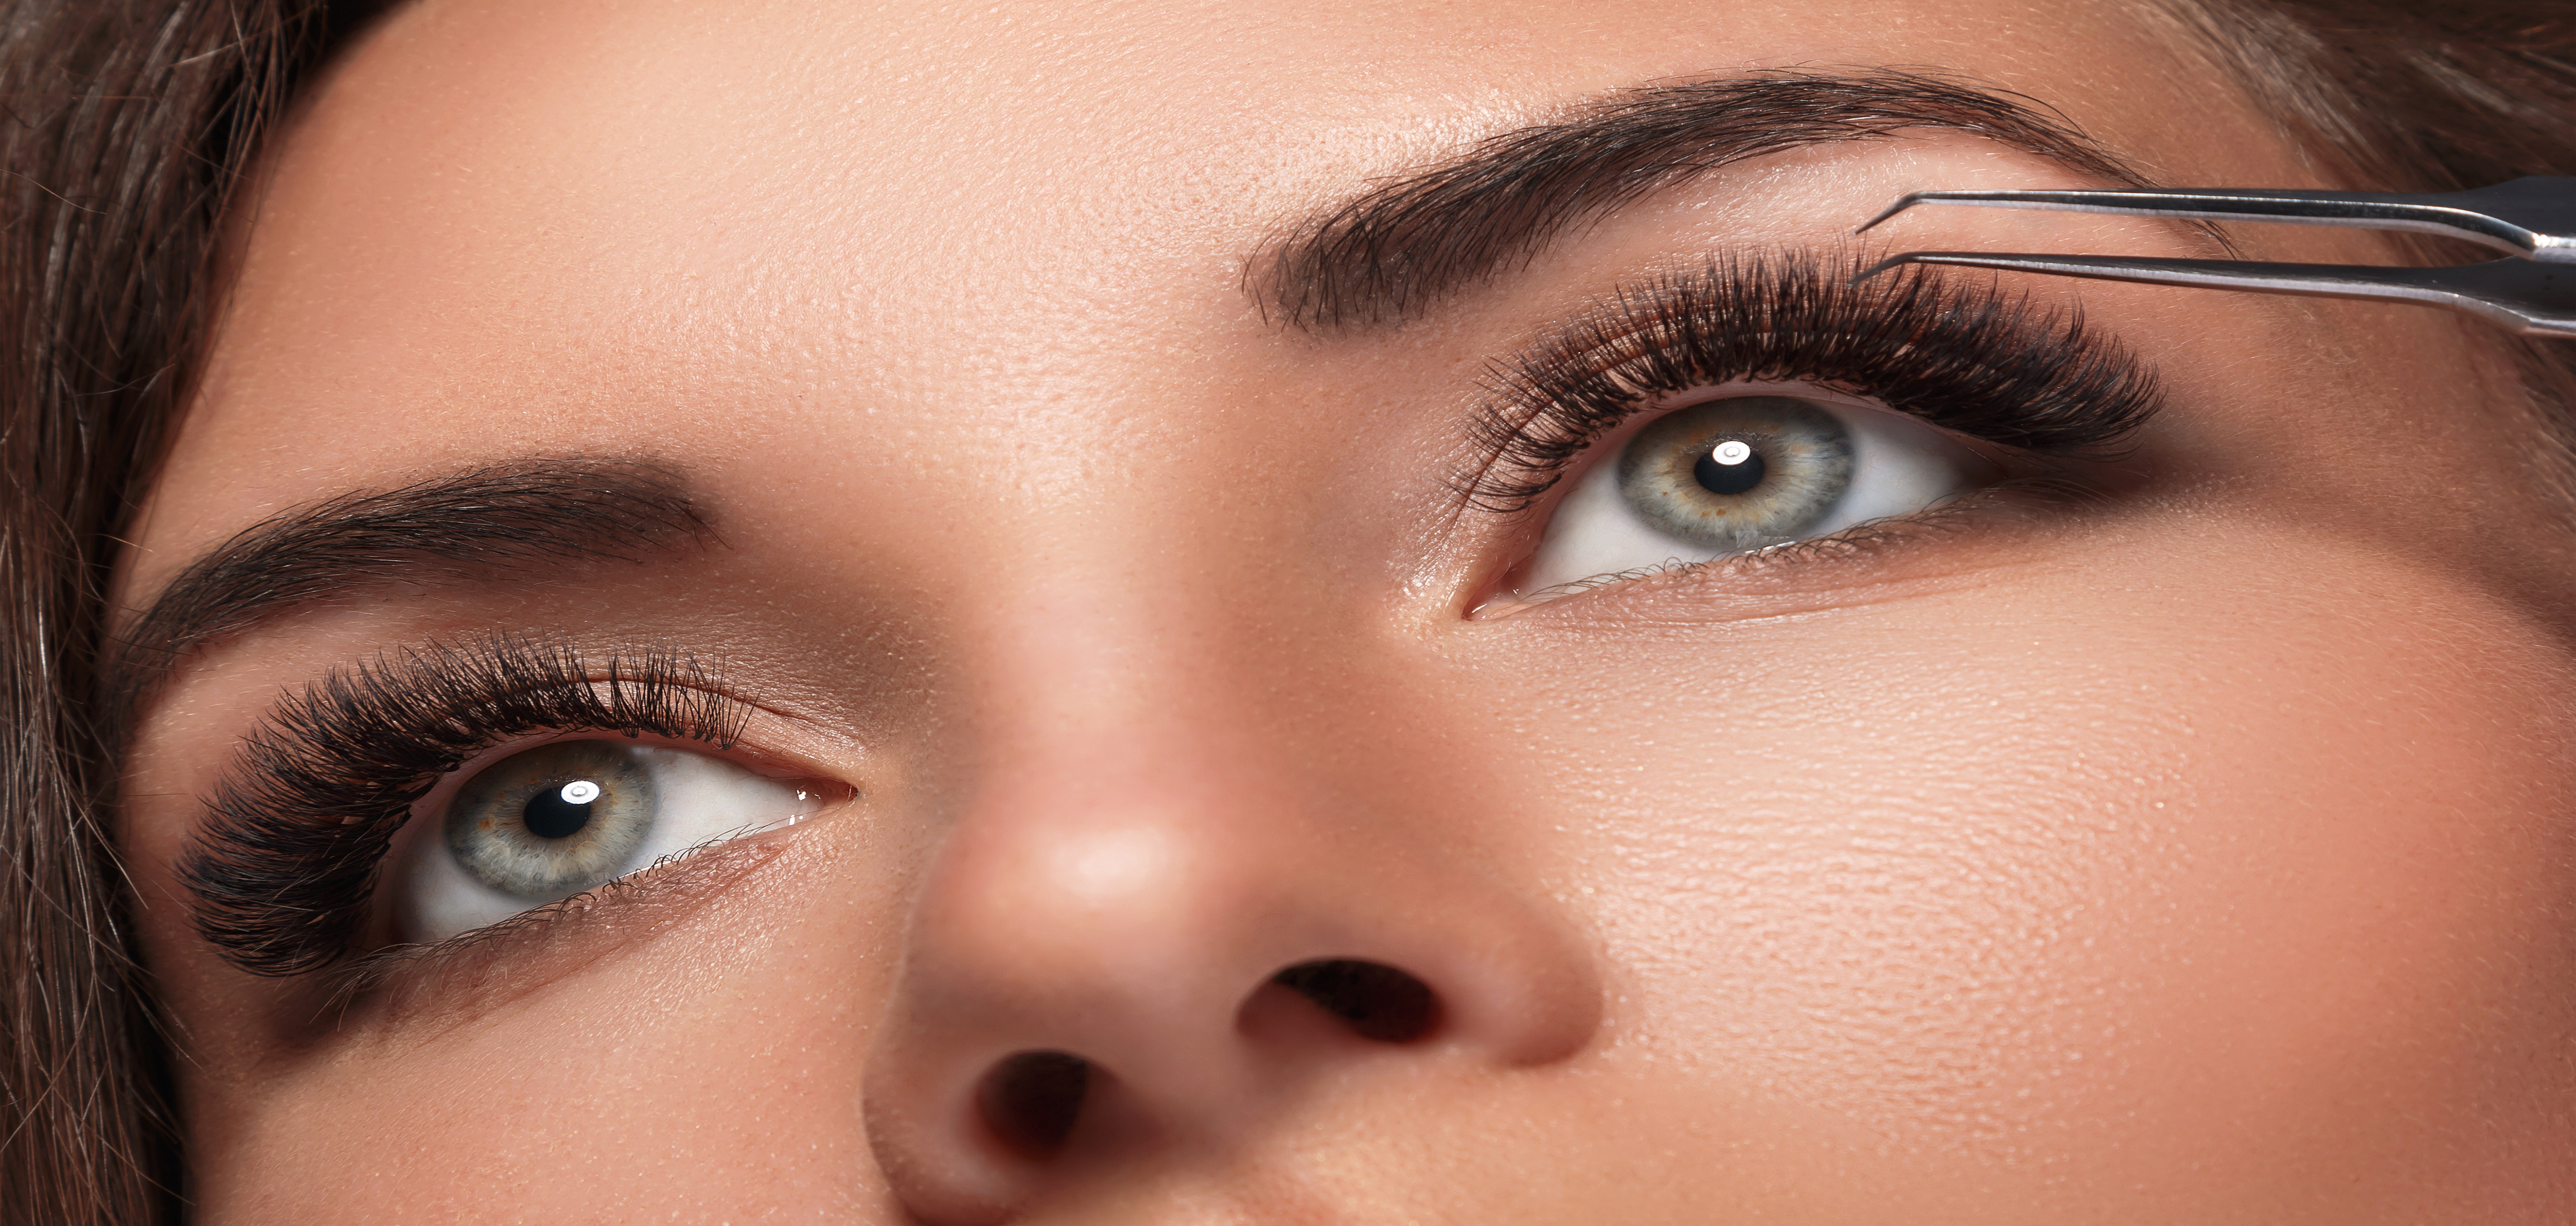 019d6a3c755 Brow Ambitions offers premium Faux Mink Lashes which feels extremely soft  and natural. Our method of lash extensions is completely damage free and  our ...